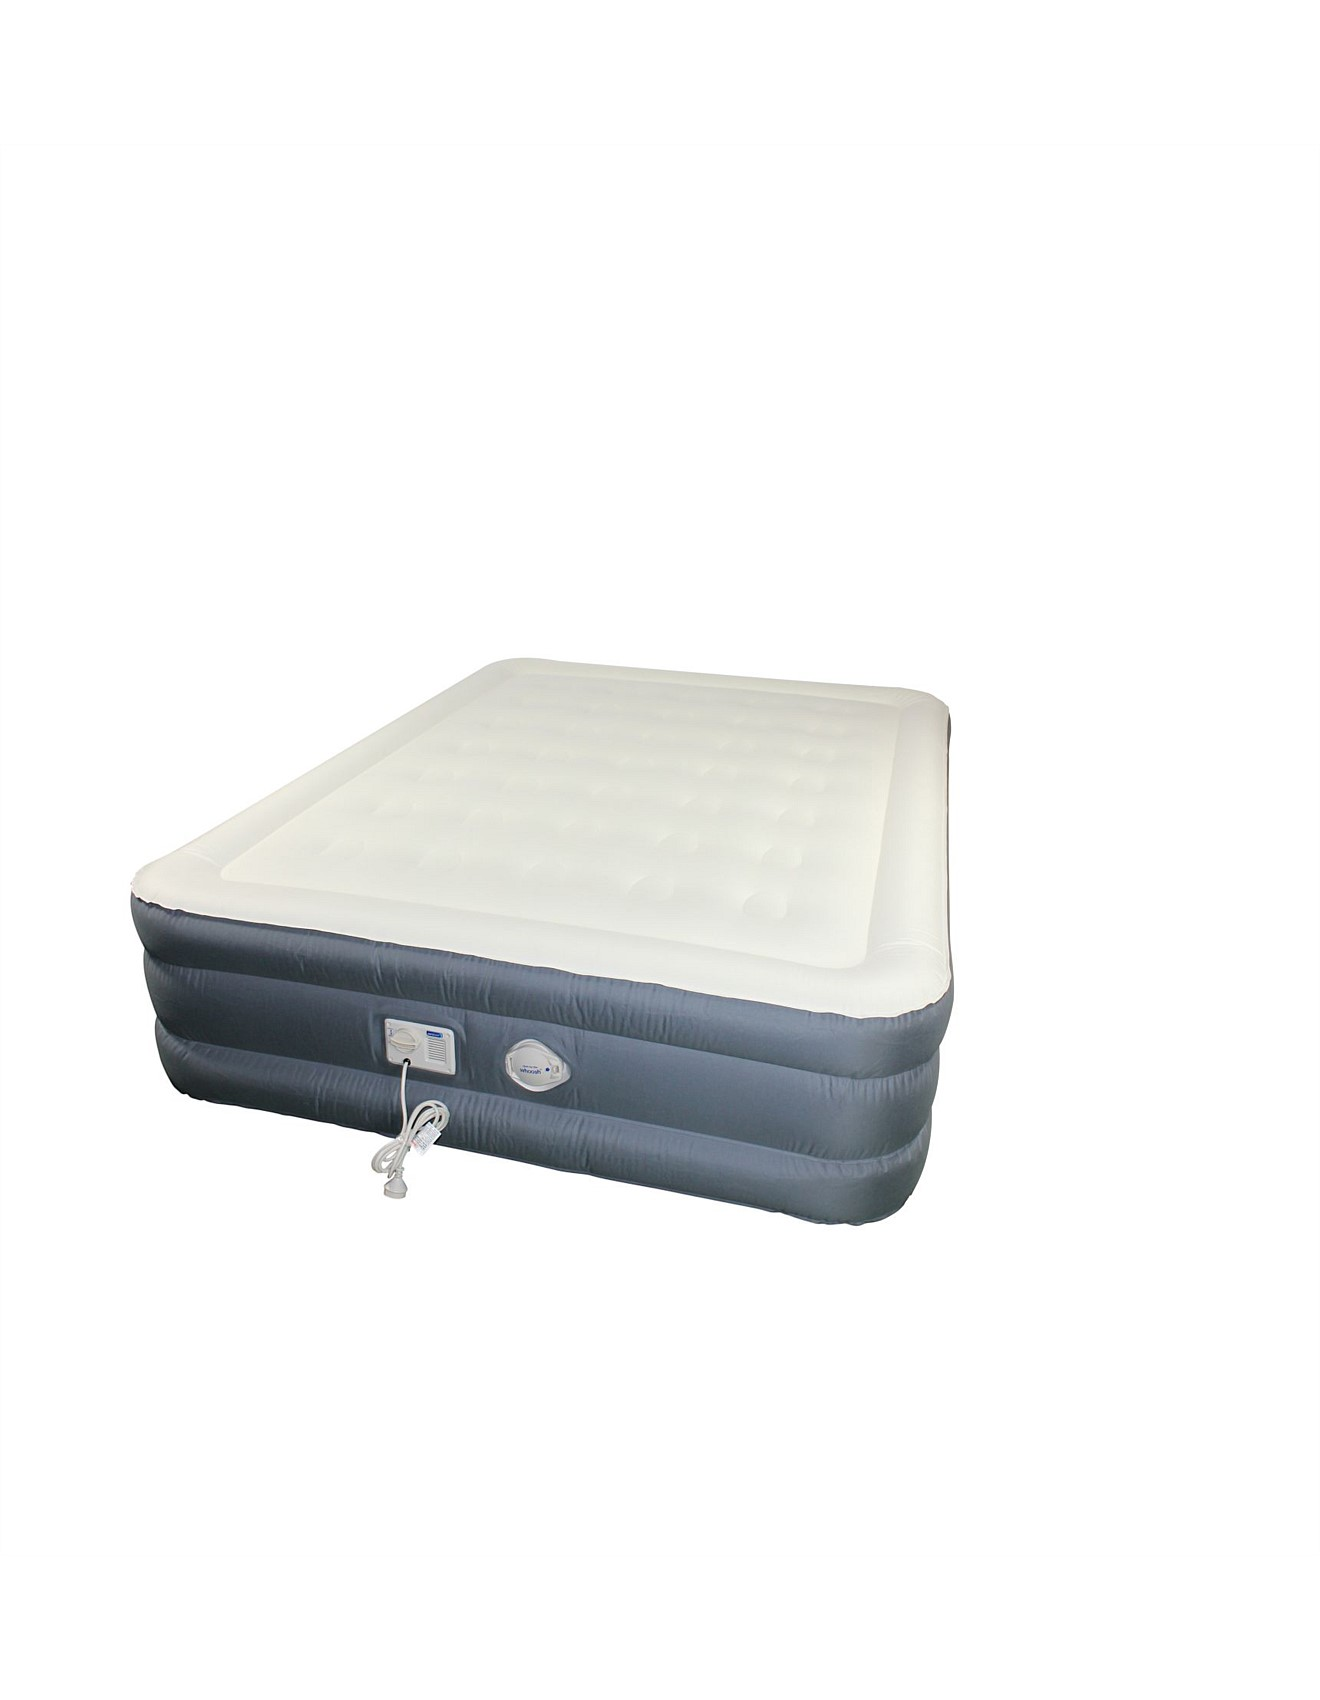 Queen Beds Online Aerobed Buy Aerobed Mattress And Beds Online David Jones